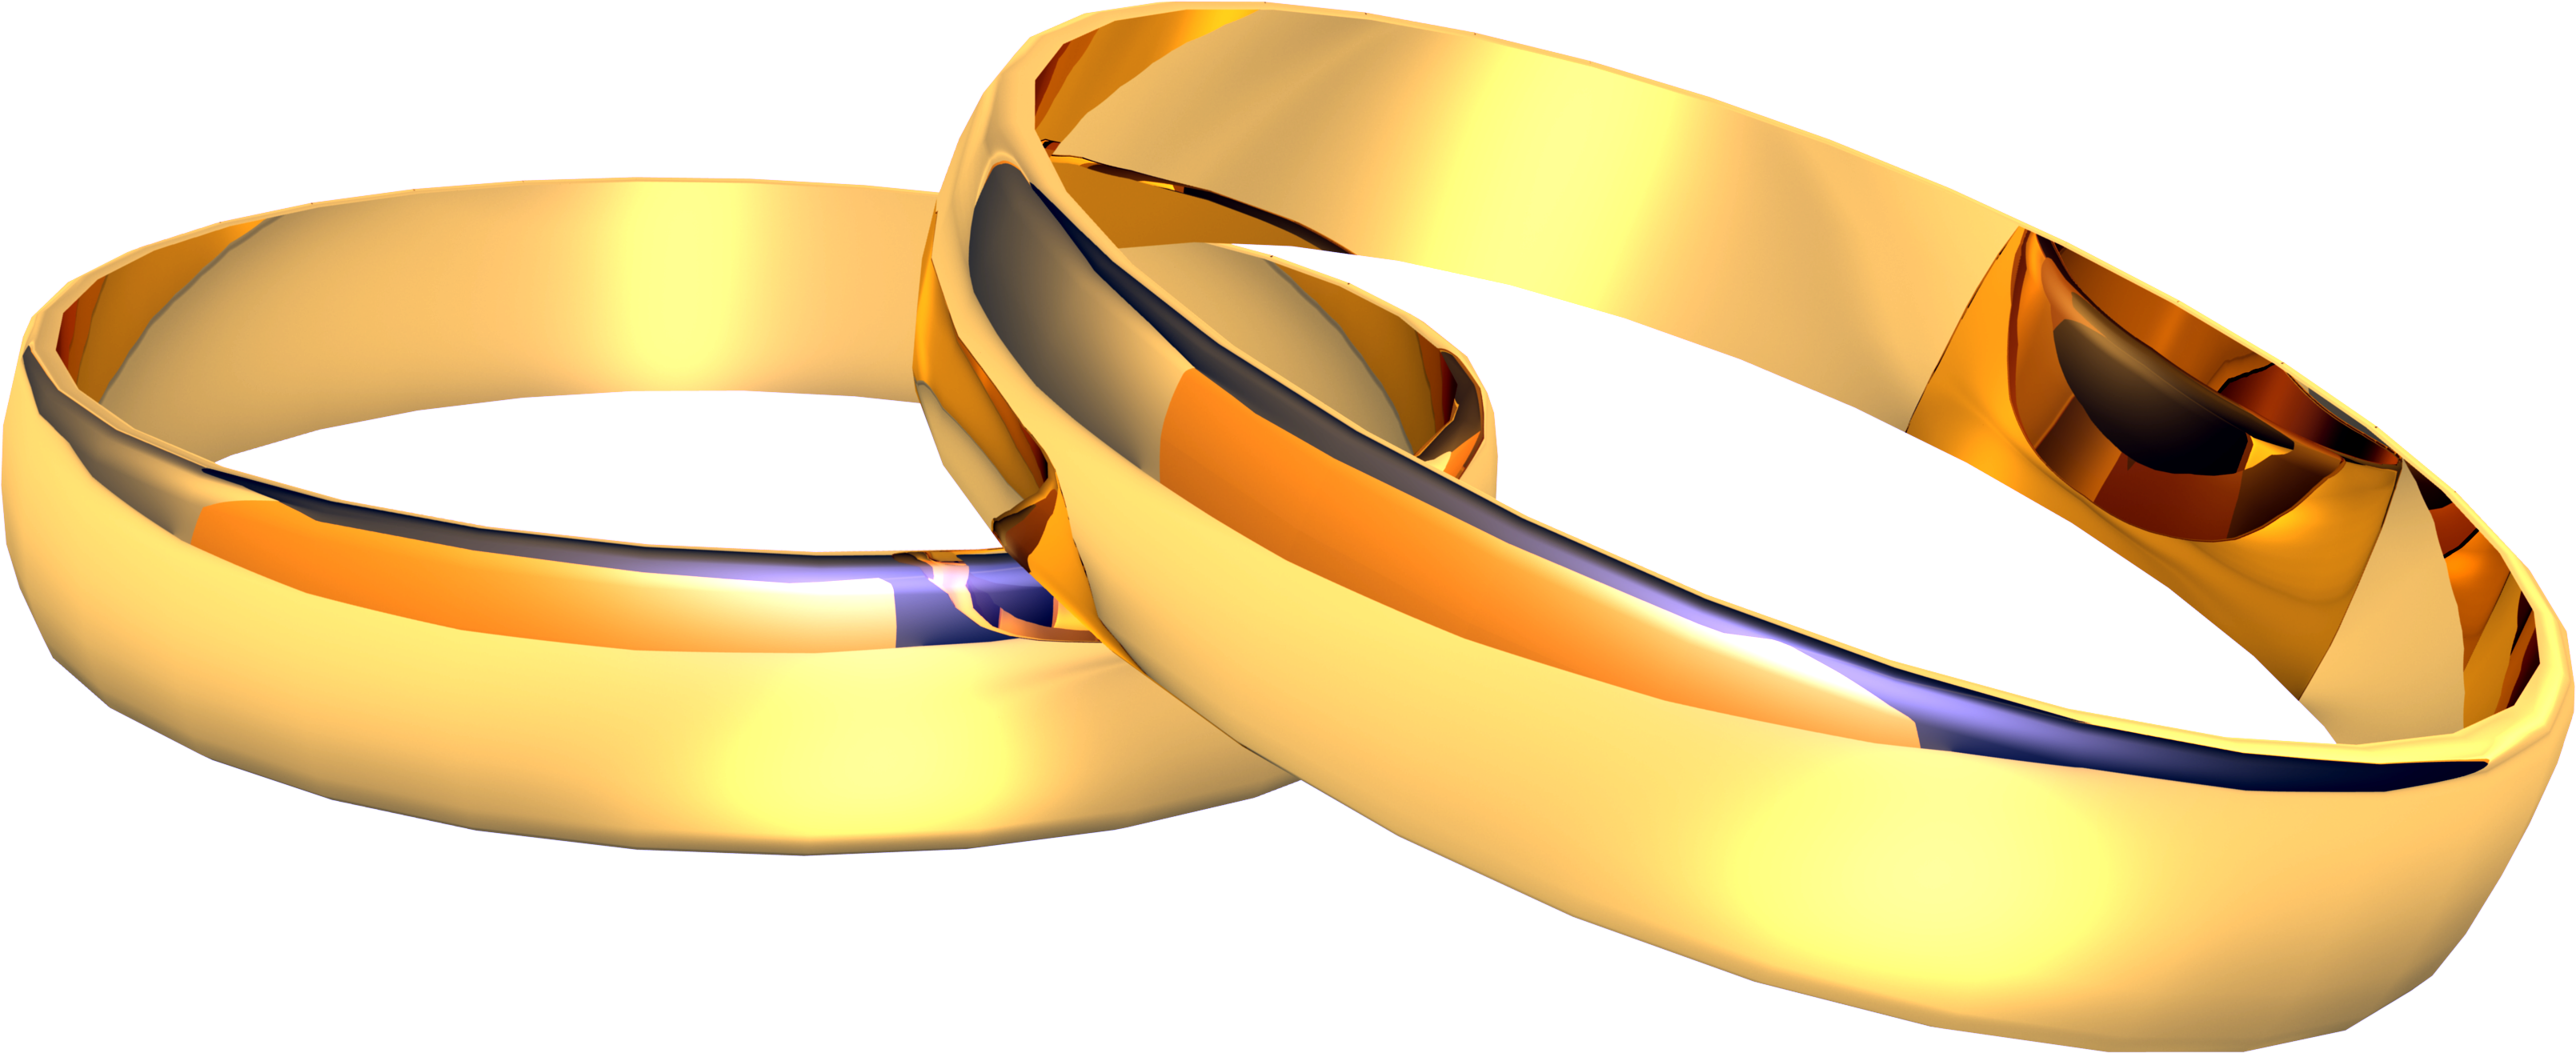 jewelry_PNG6803